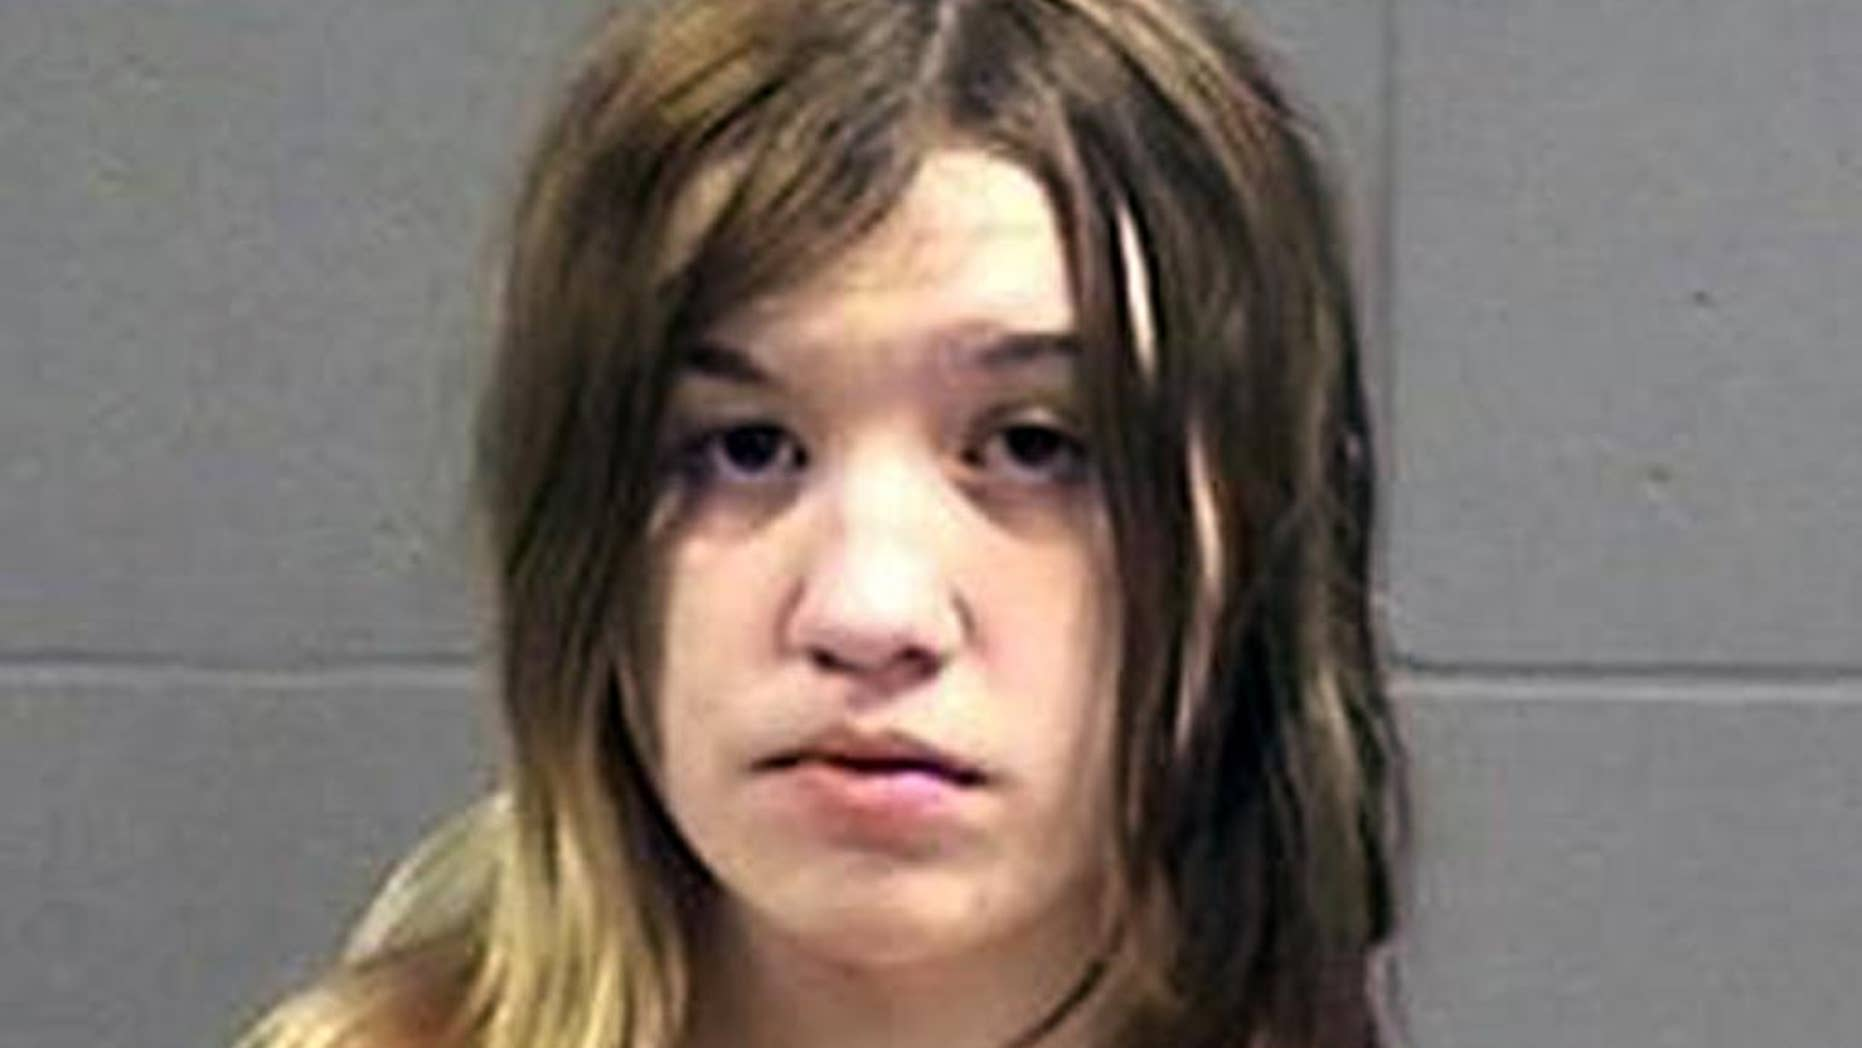 This photo provided Friday, April 24, 2014 by the Oneida County, Wisconsin, Sheriff's Office shows Ashlee Martinson, 17. Martinson is is charged with fatally stabbing her mother Jennifer Ayers, 40,  and shooting her stepfather Thomas Ayers, 37, on March 8 at the family's home in the Town of Piehl, Wis. (Oneida County Sheriff's Office via AP)